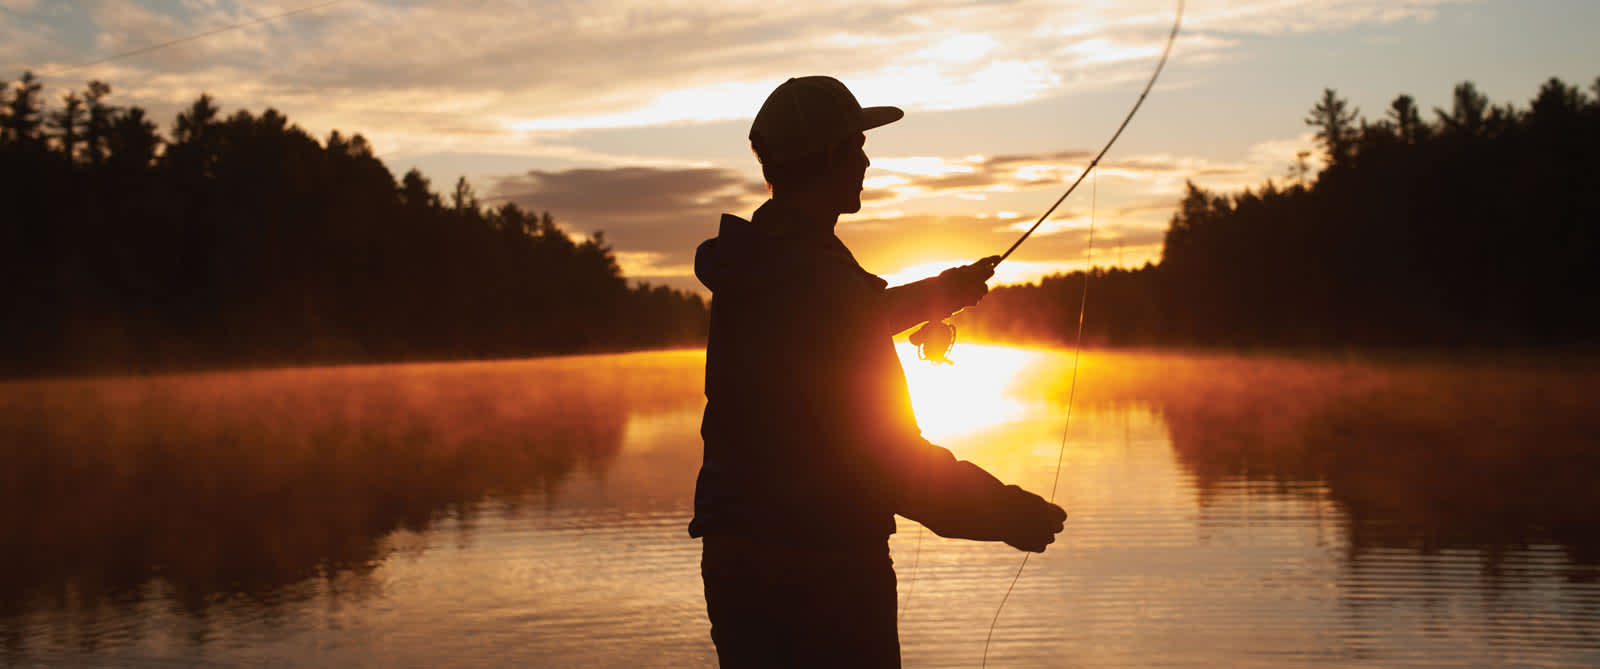 Fishing License Chesapeake, VA | Saltwater, Freshwater